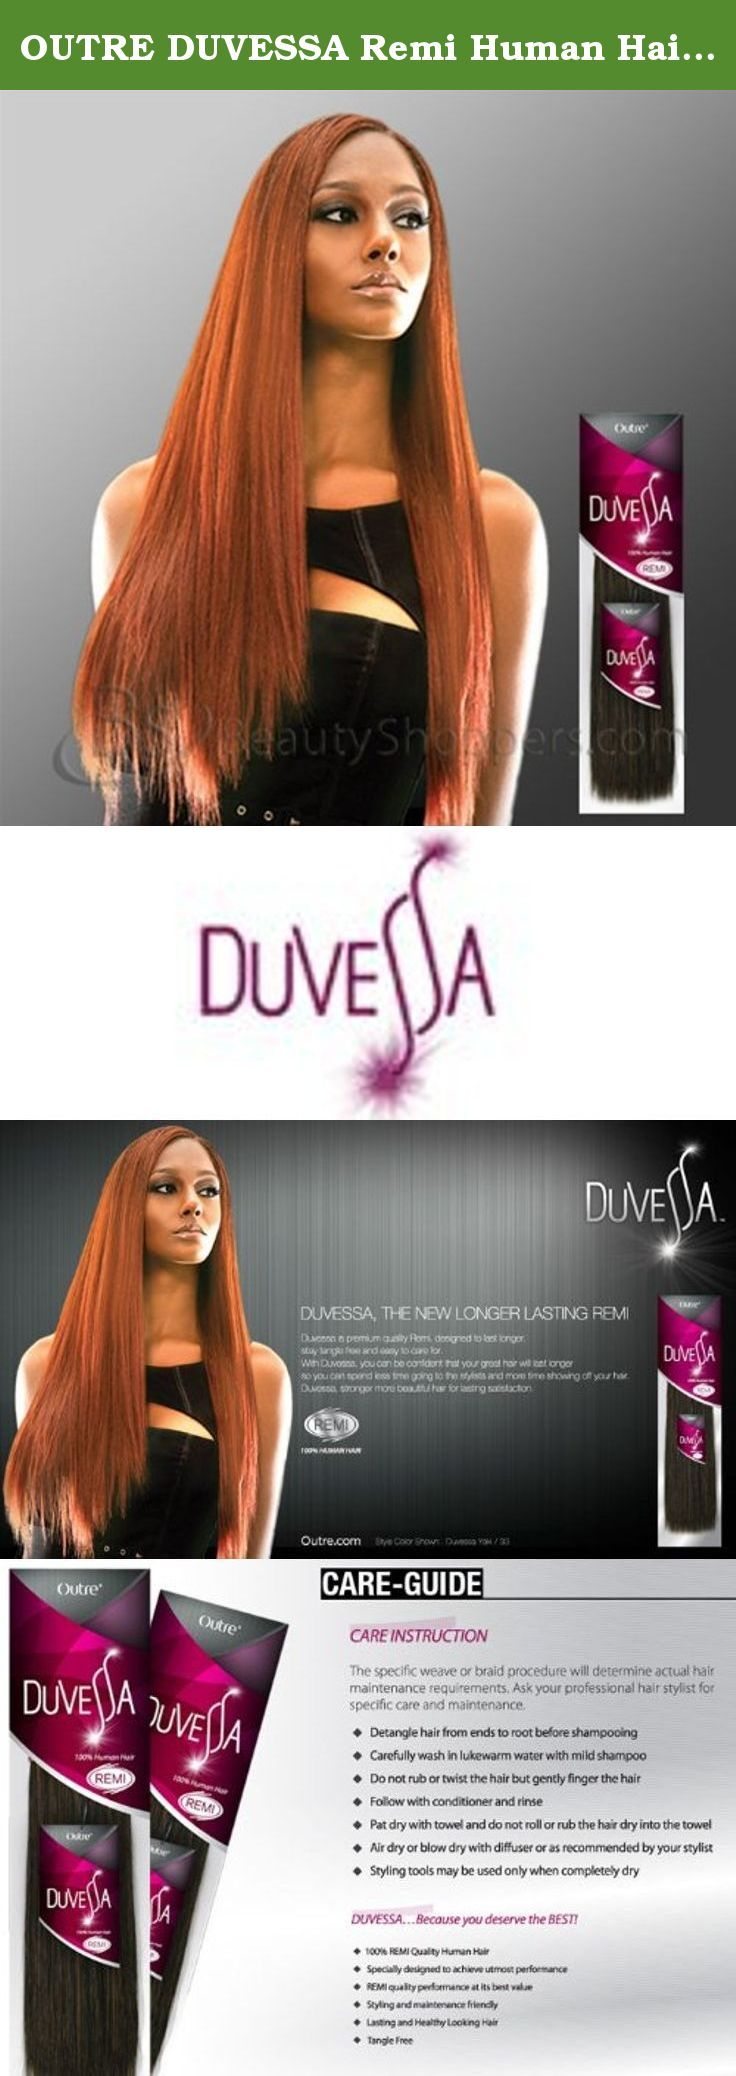 Outre duvessa remi human hair yaki wvg 10 mixed color outre duvessa remi human hair yaki wvg 10 mixed color duvessa is premium quality remi designed to last longer stay tangle free and easy to care for nvjuhfo Images